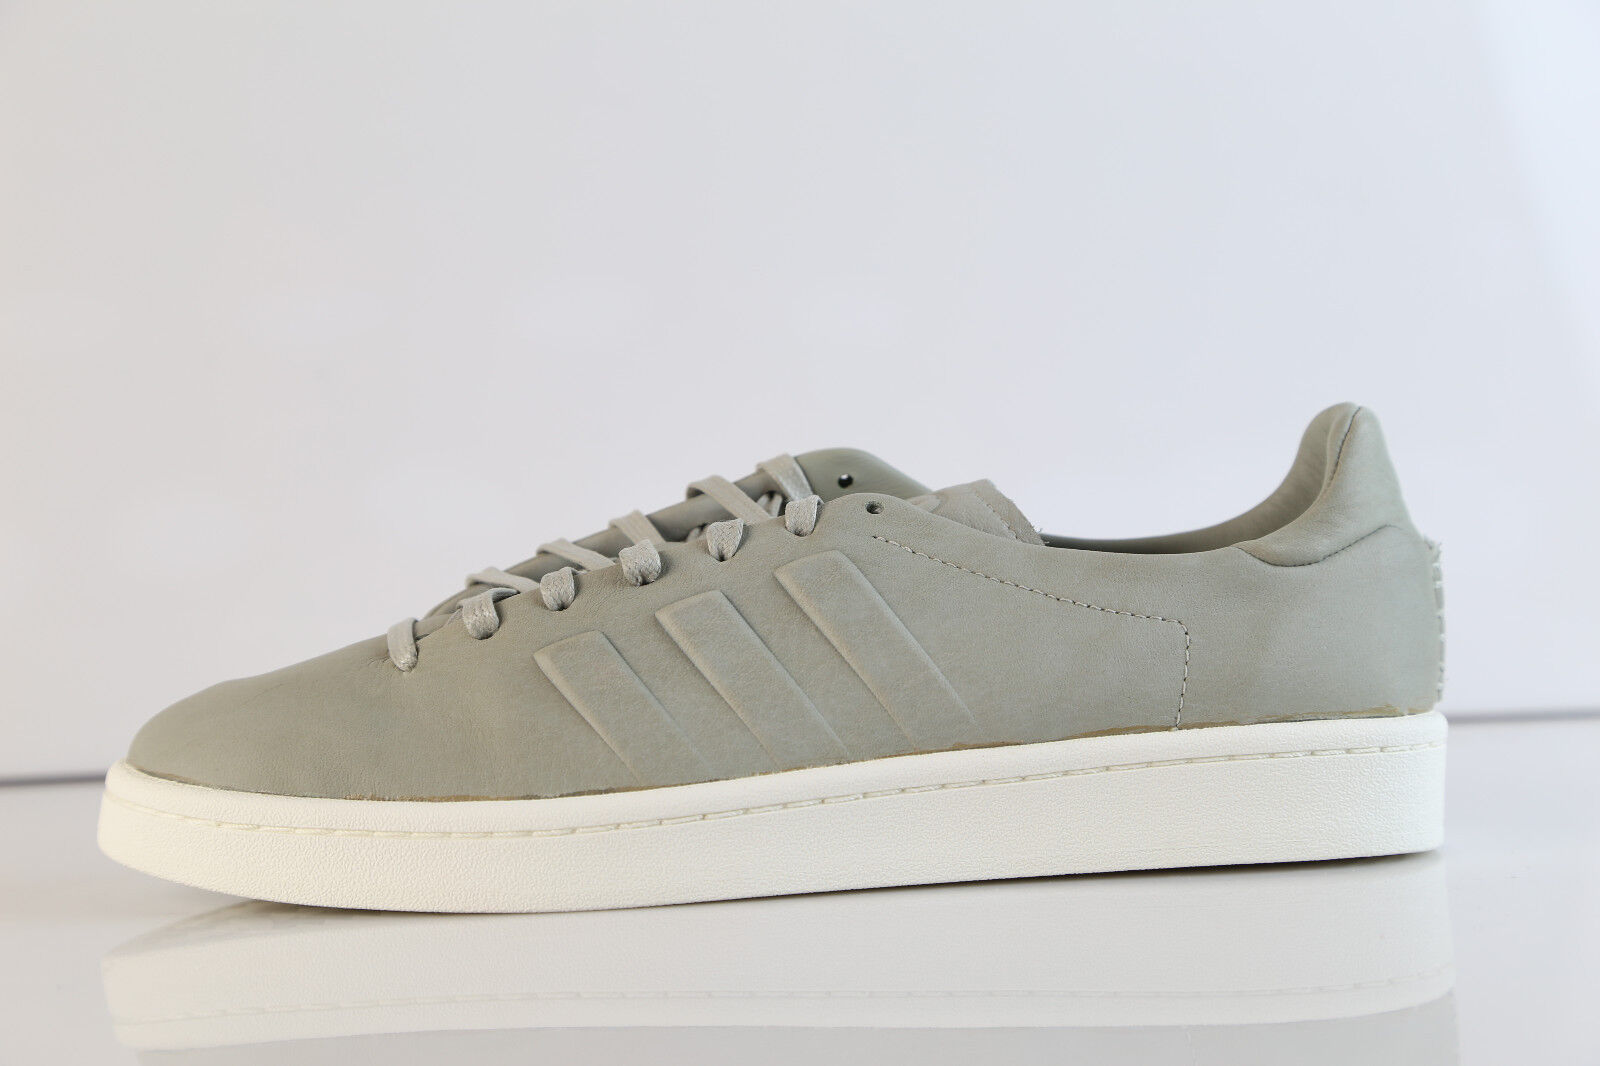 Adidas Wings + Horns WH Campus Sesame Chalk White CG3752 8-12.5 consortiium stan